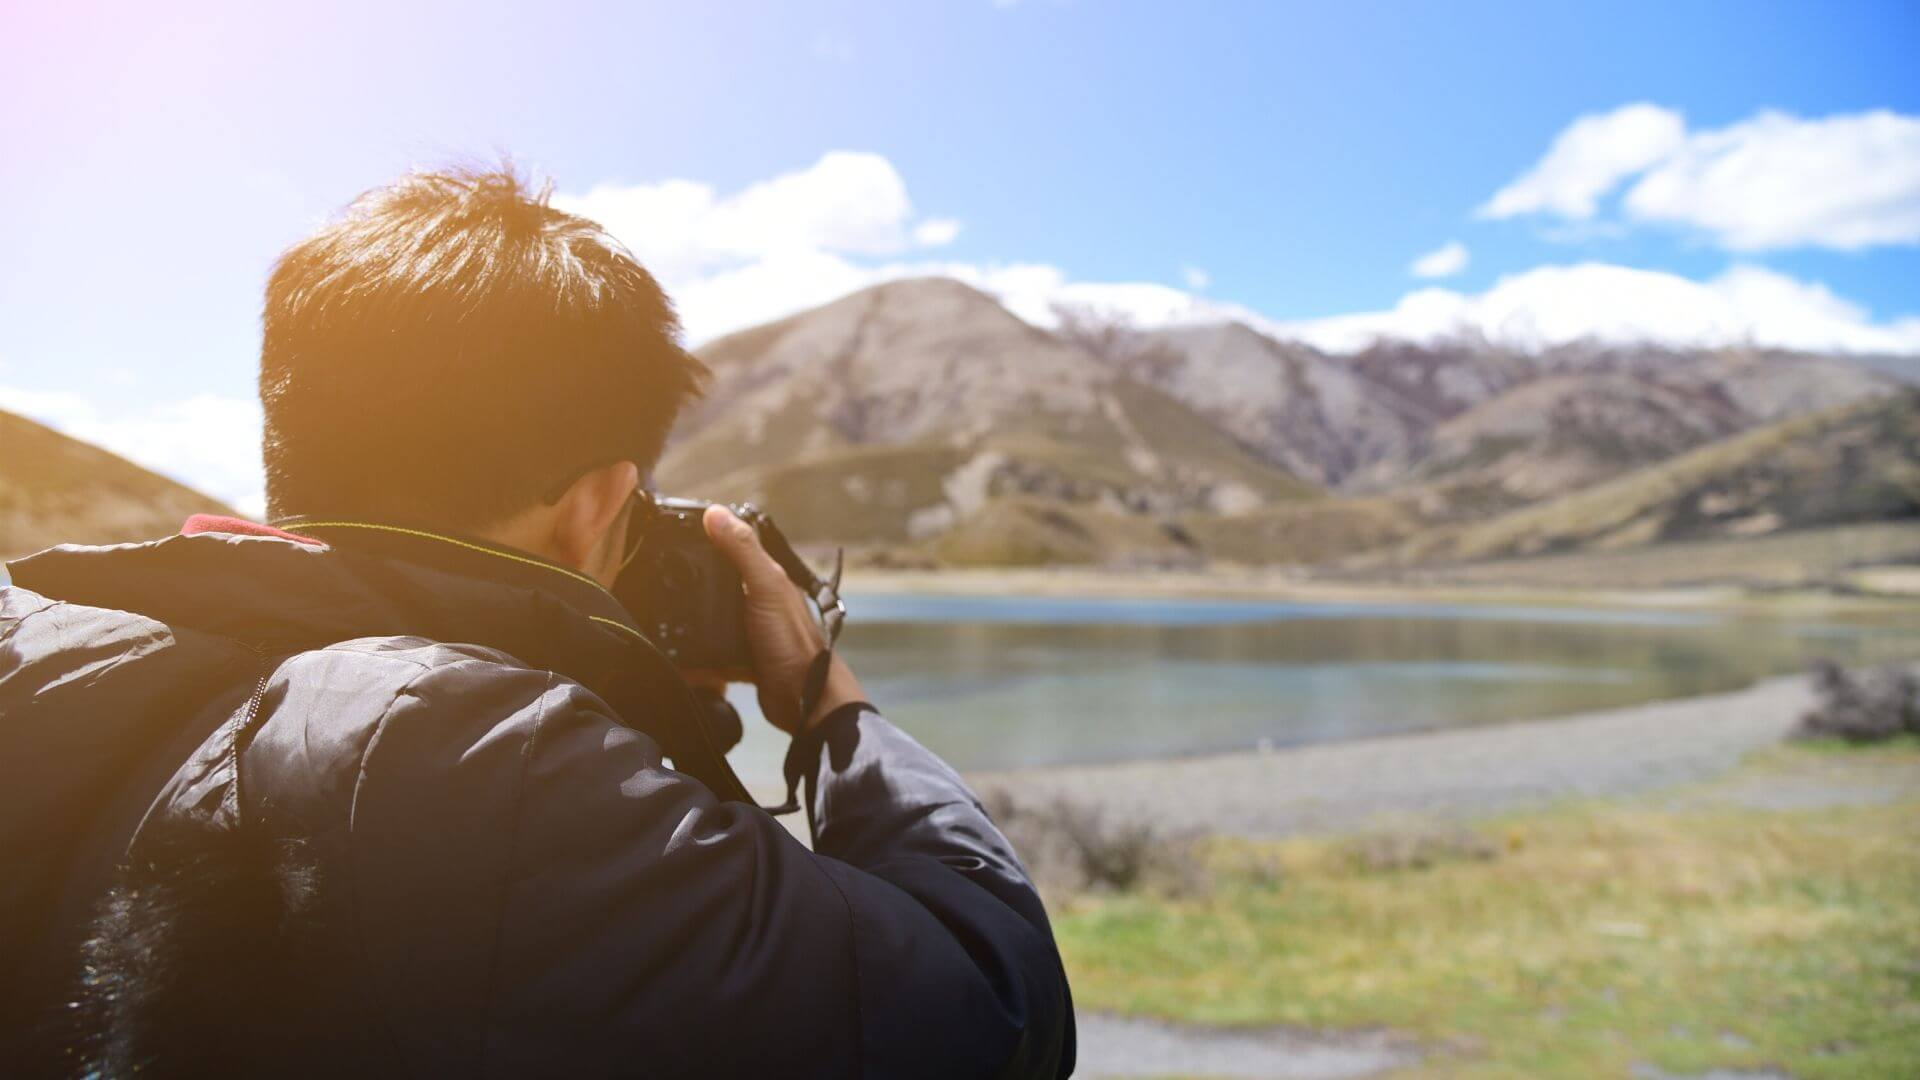 20 Best Affiliate Programs For Photographers In 2020